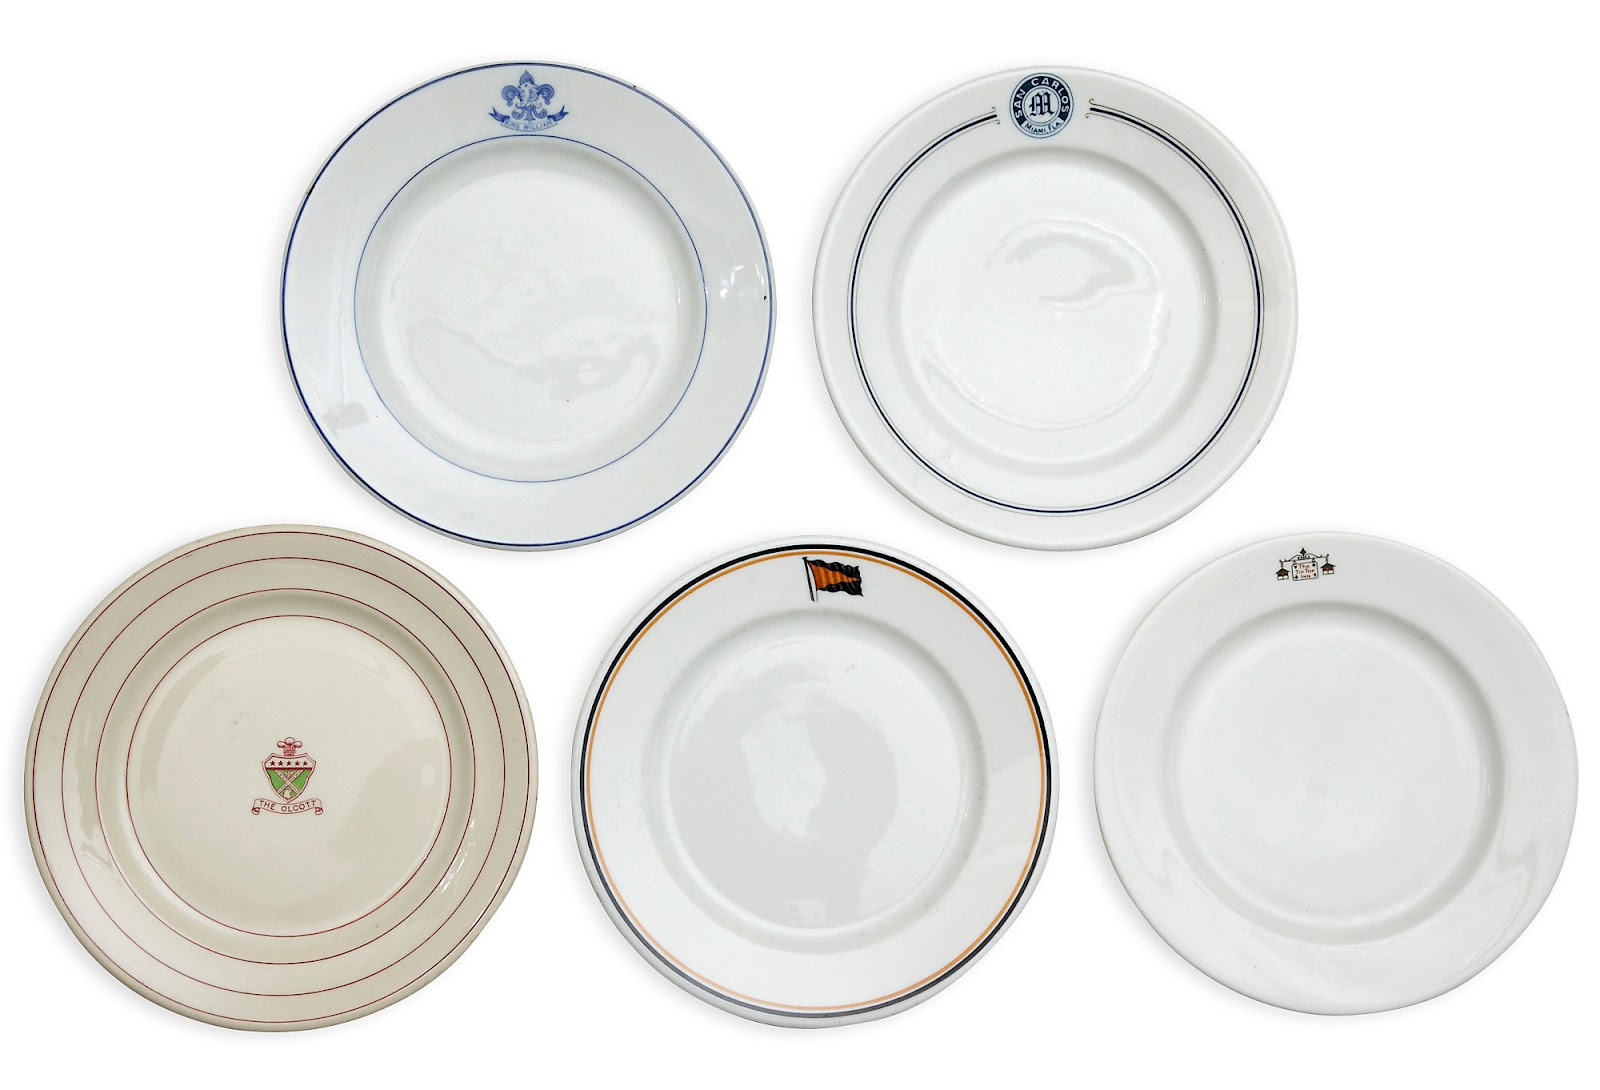 By the time I got to Fishs Eddyu0027s One Kings Lane sale it was slim pickings but I couldnu0027t help admiring the collection of Vintage Plates for sale.  sc 1 st  Let the Tide Pull Your Dreams Ashore & Let the Tide Pull Your Dreams Ashore: Fishs Eddy